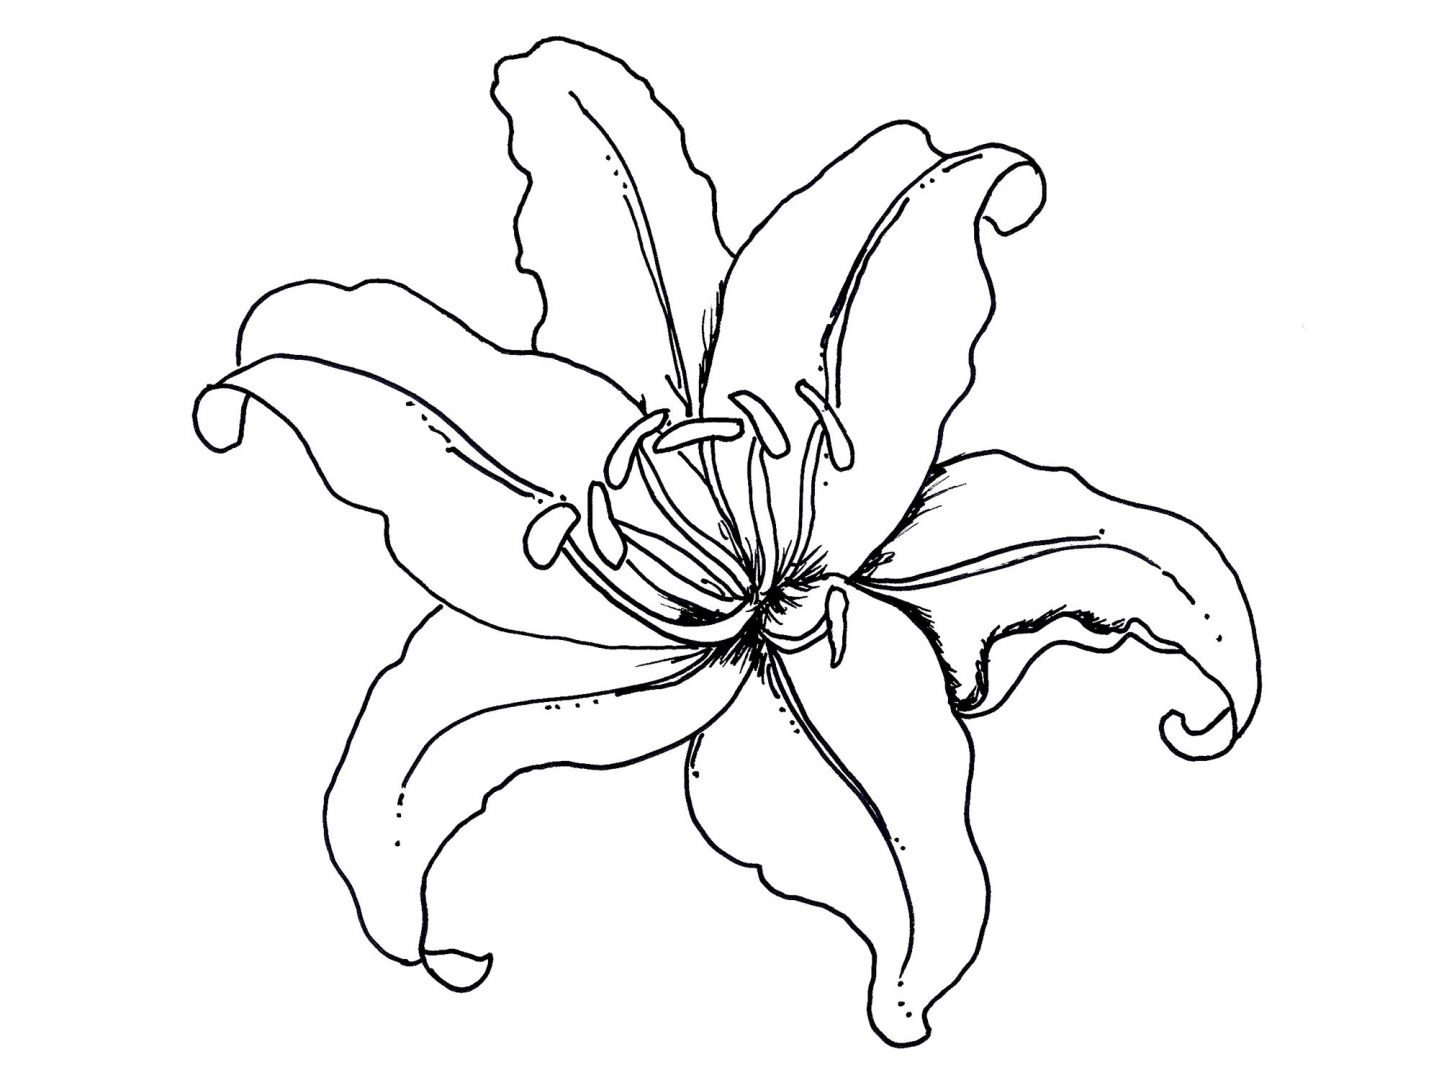 Tropical Flower Line Drawing : Plantillas de flores para colorear